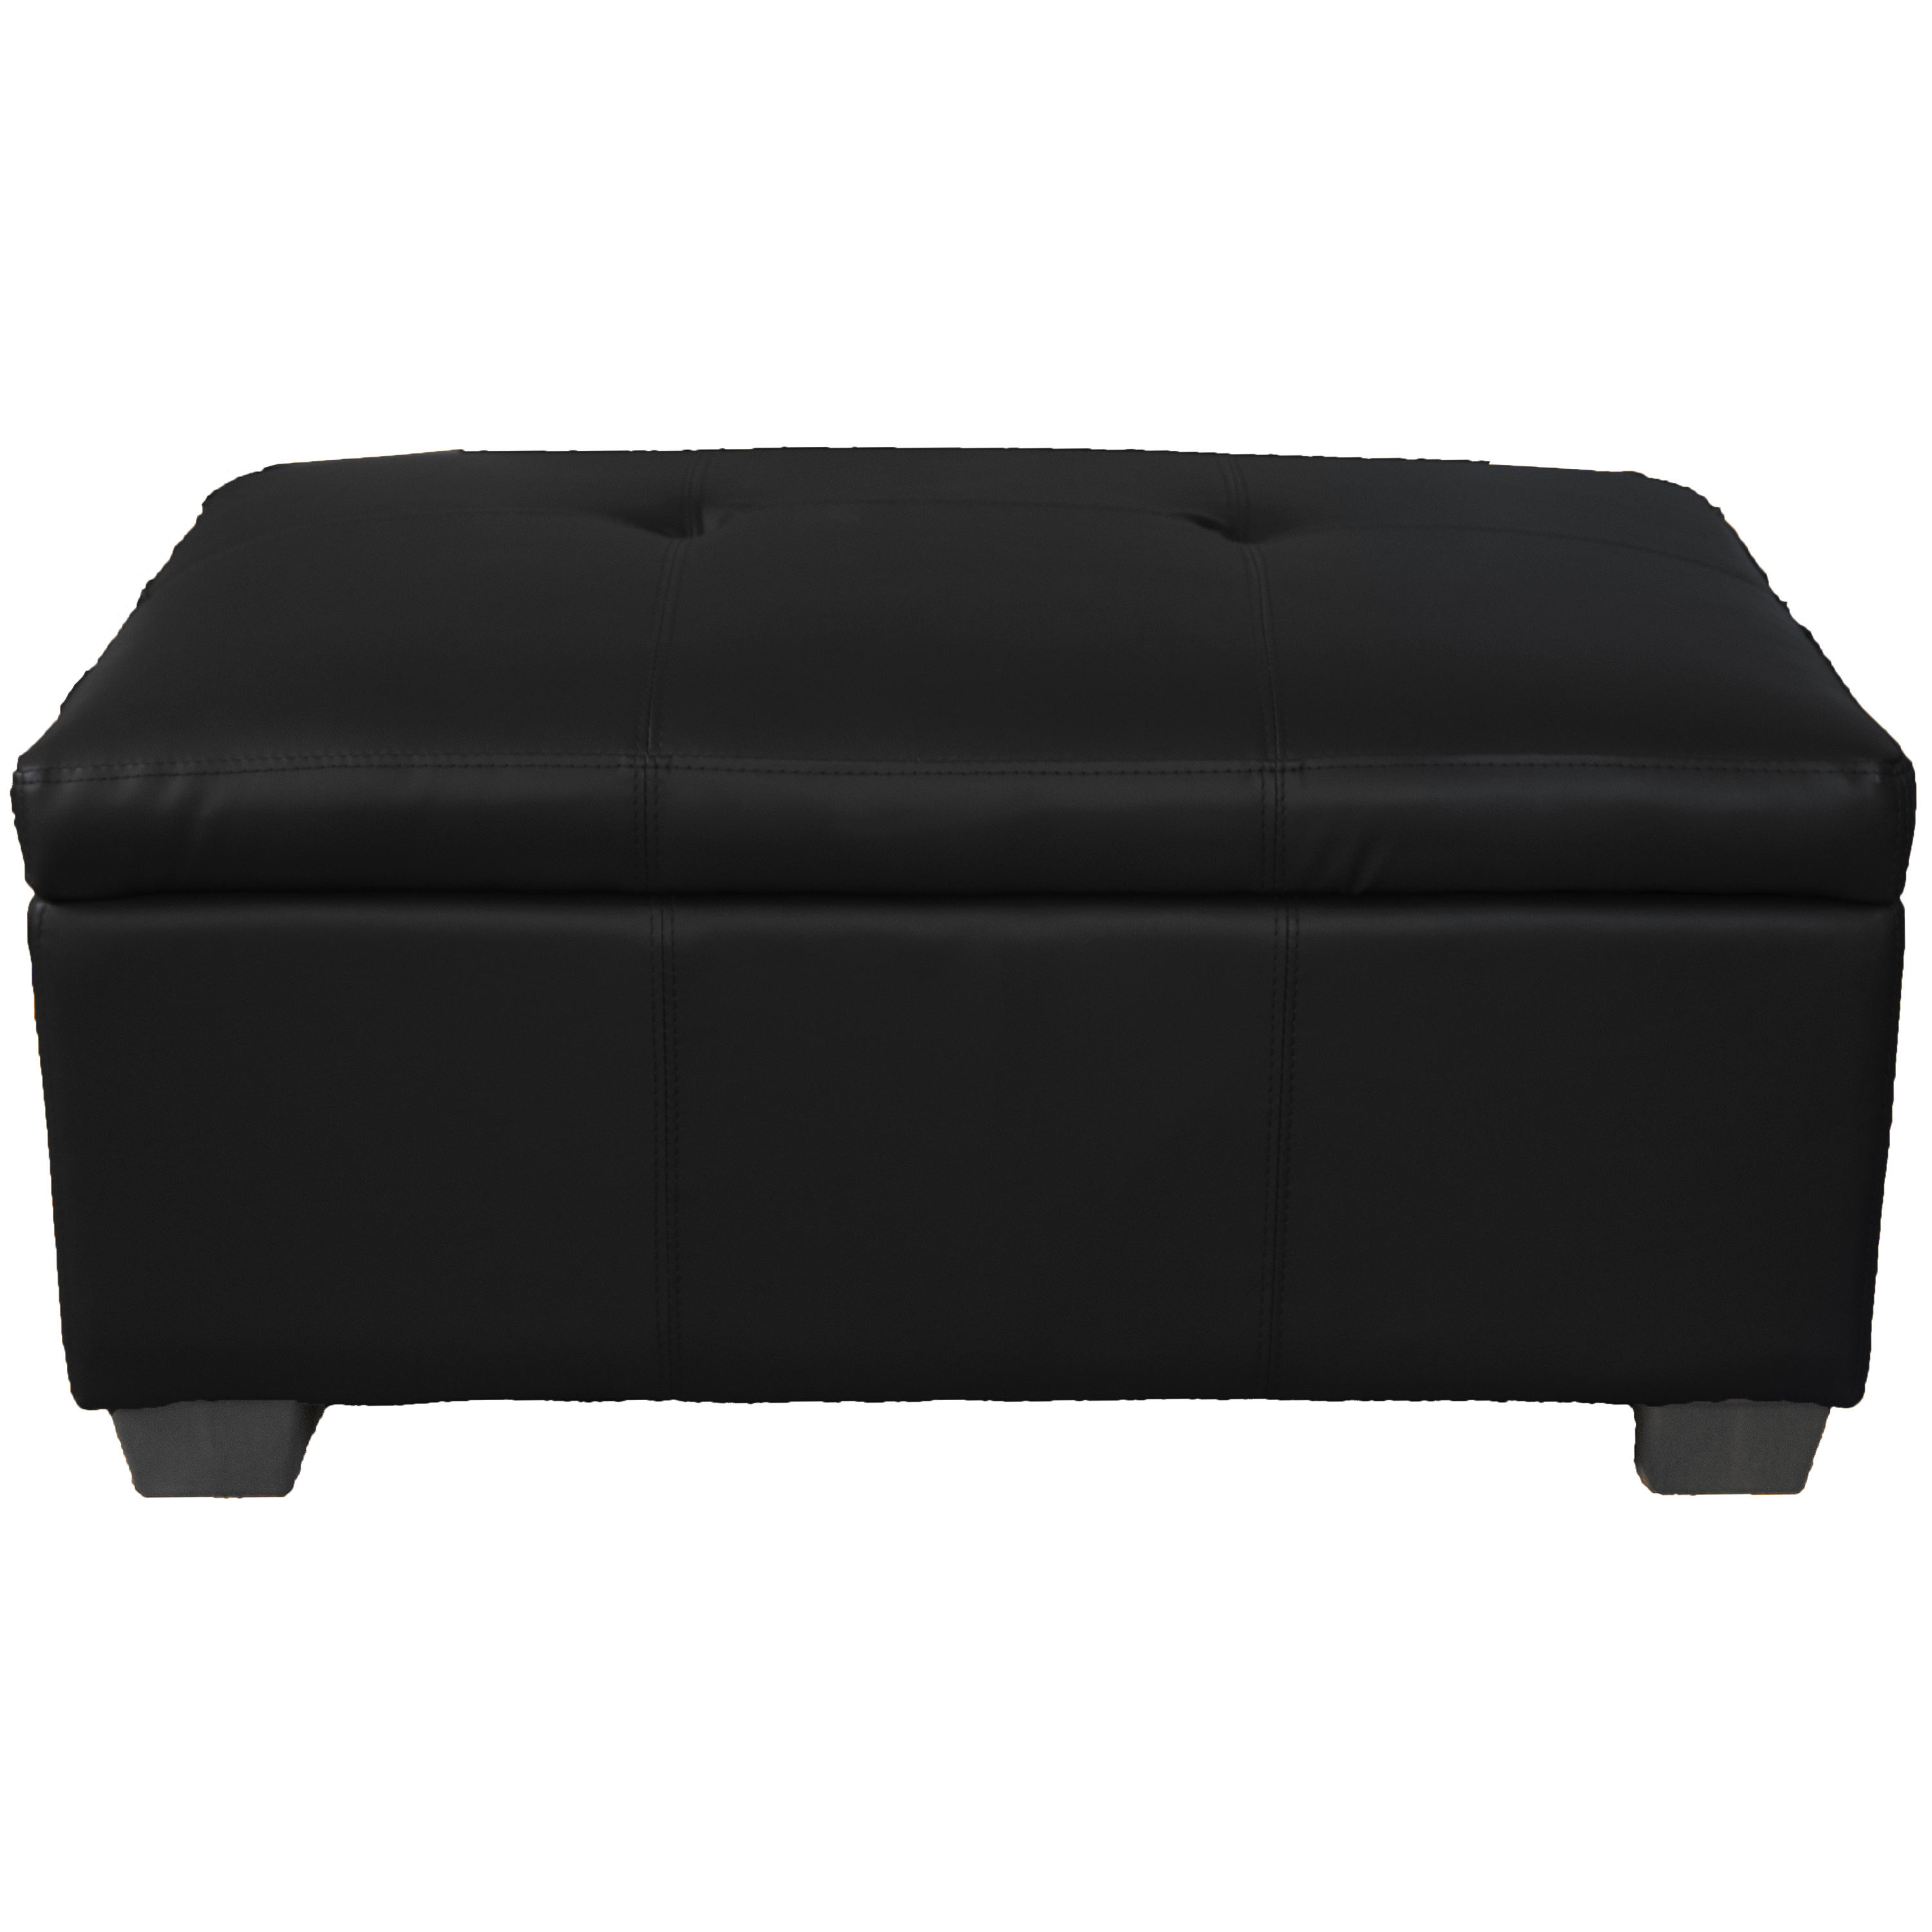 Stupendous Timeless 36 By 24 By 18 Inch Storage Ottoman Bench Leather Pdpeps Interior Chair Design Pdpepsorg